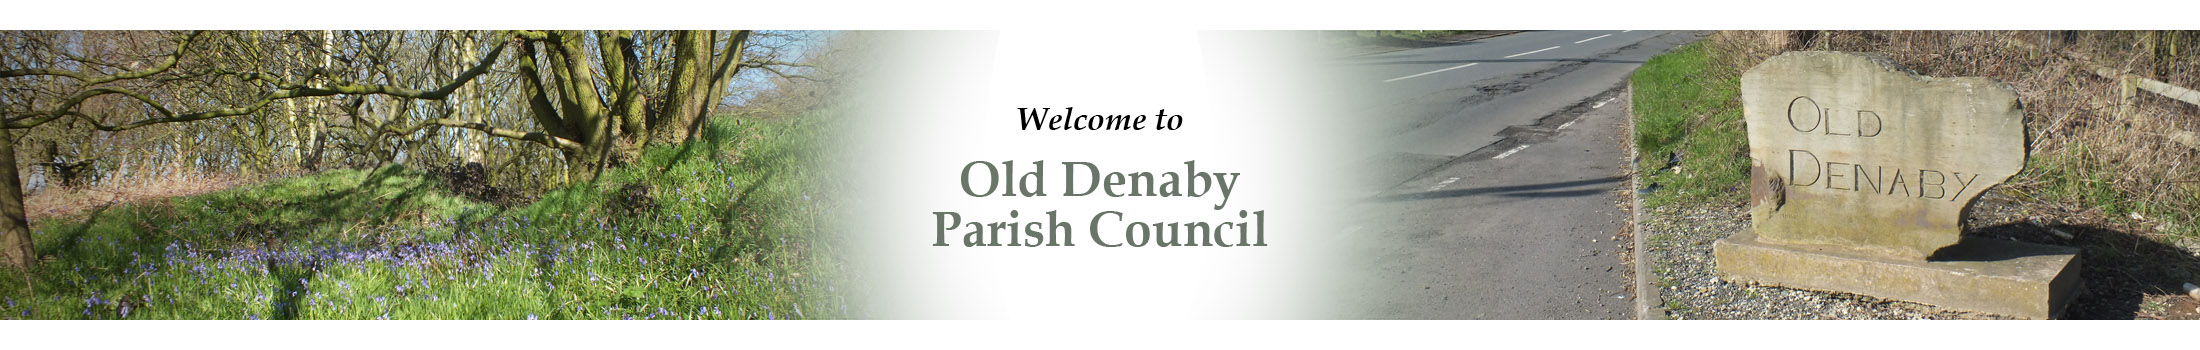 Header Image for Old Denaby Parish Council